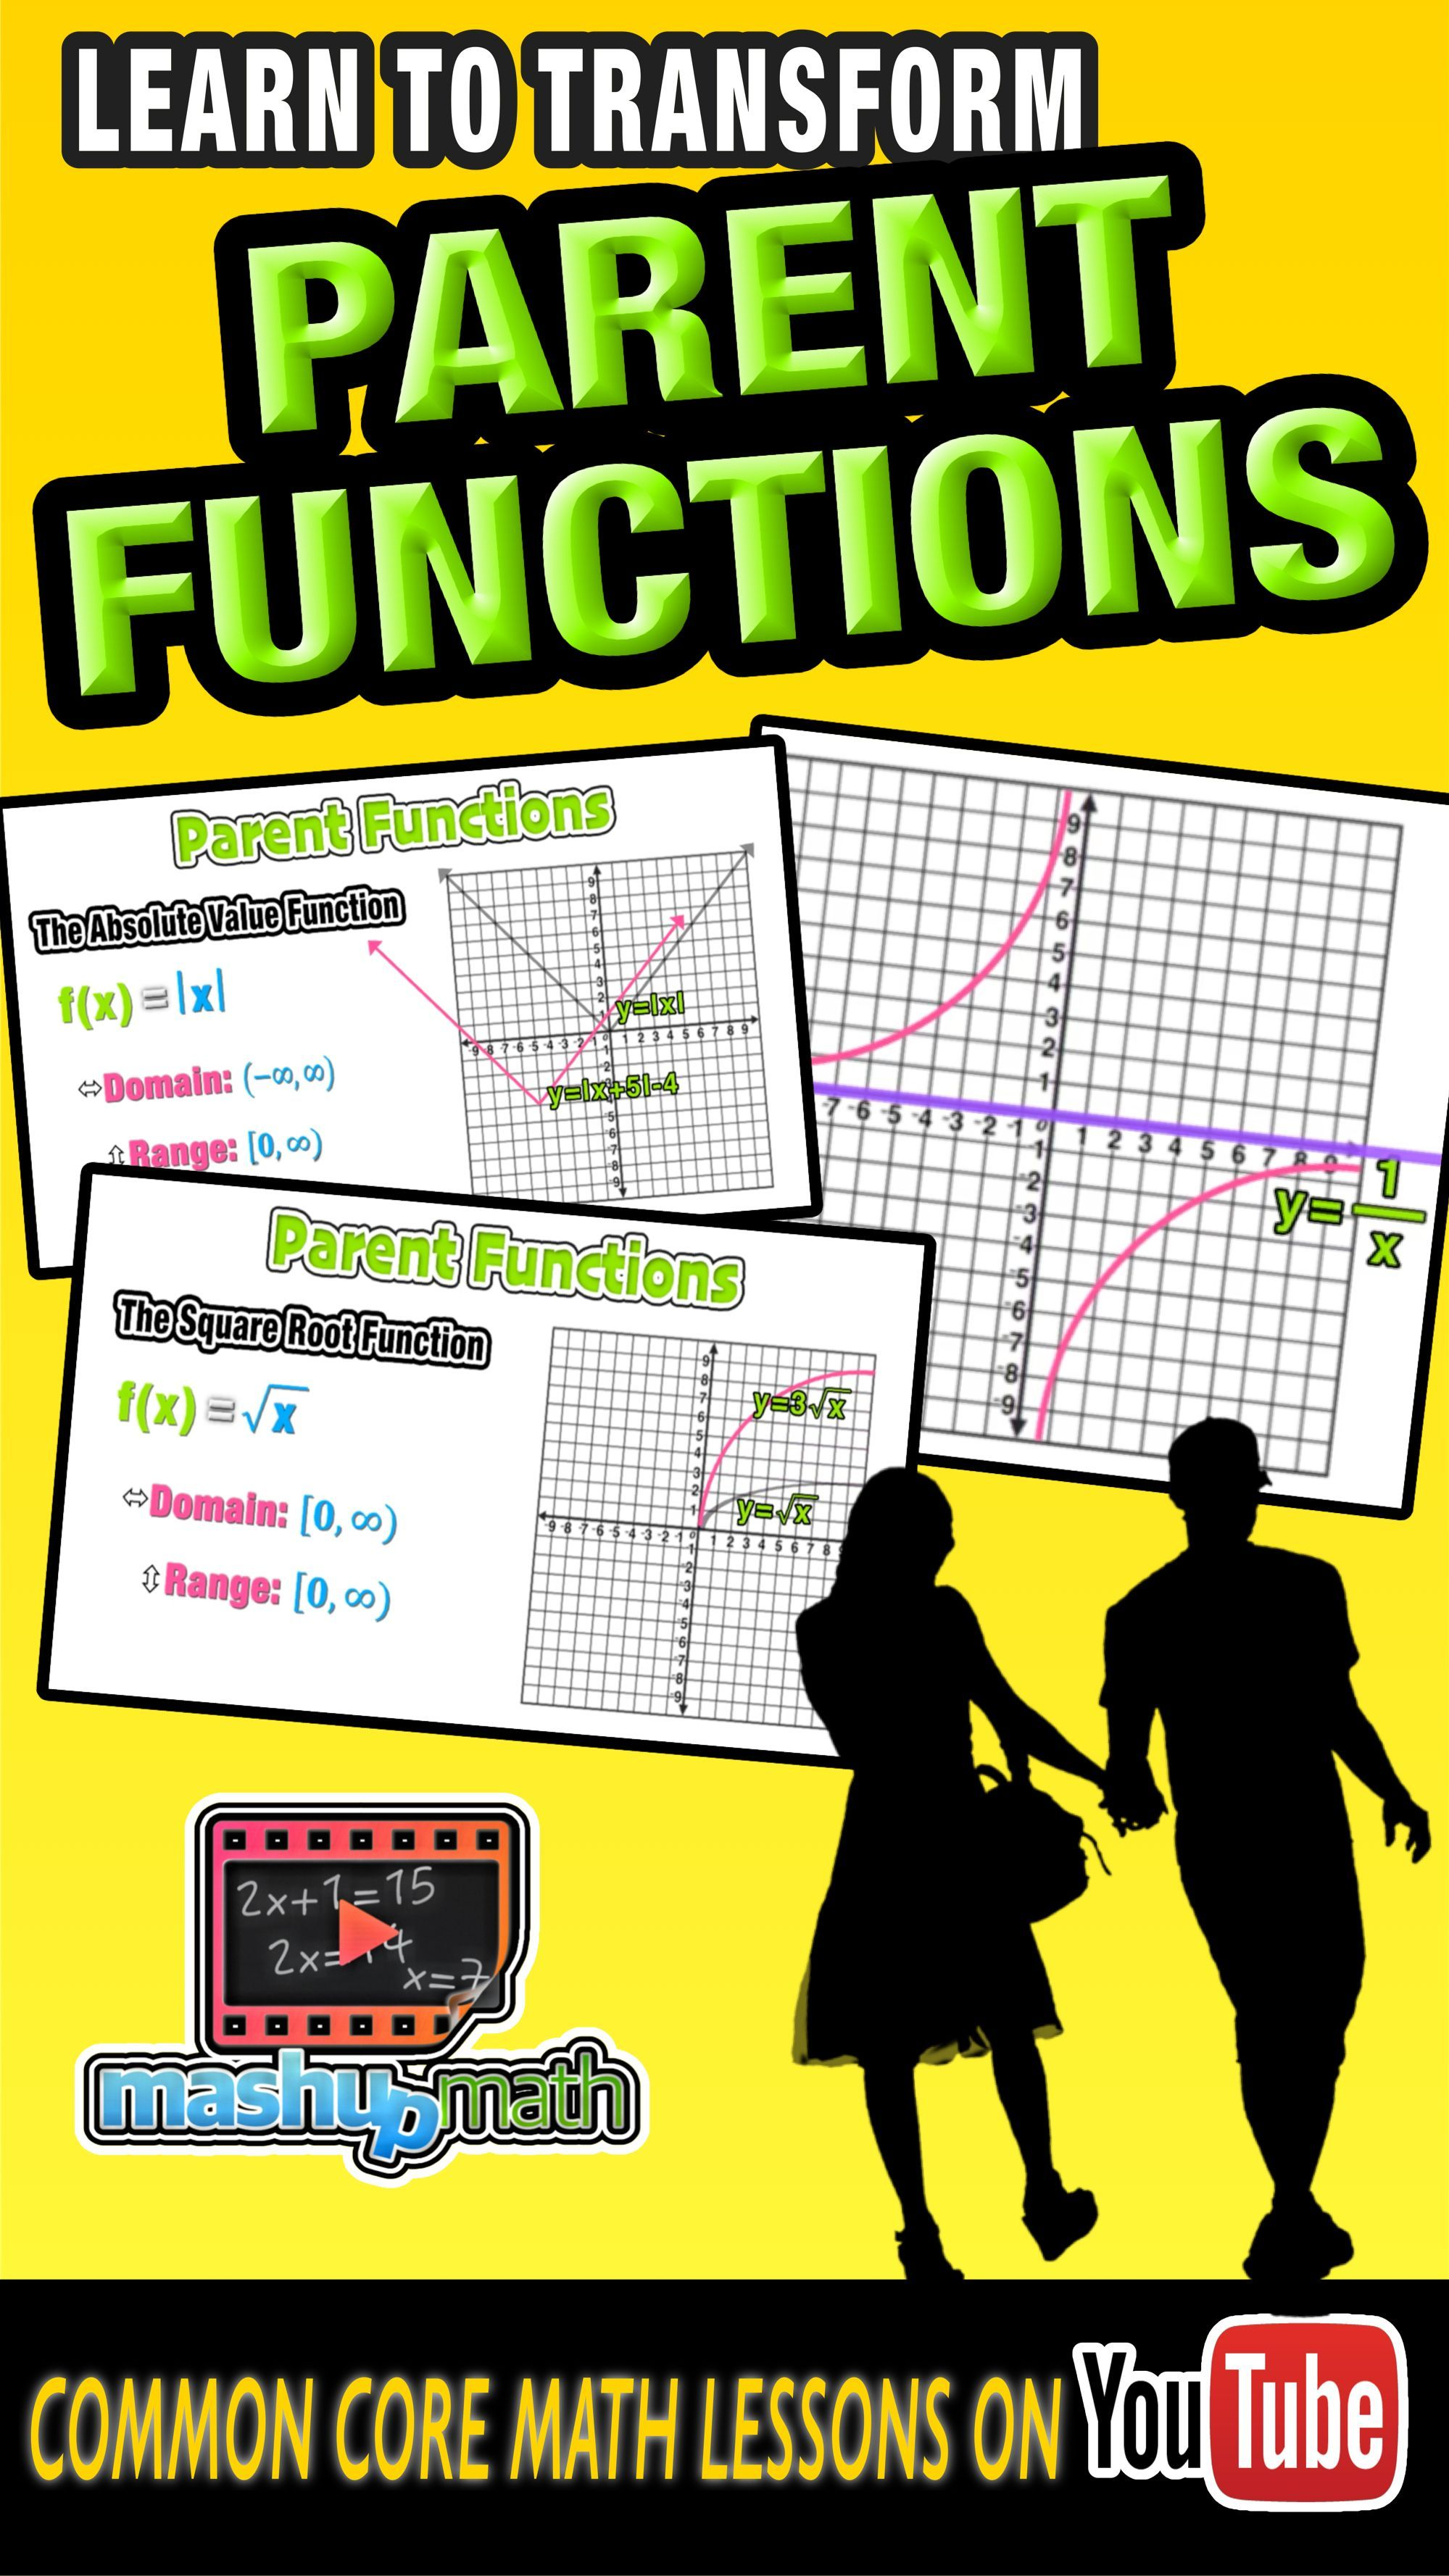 So How Well Do You Know The Graphs Of The Parent Functions